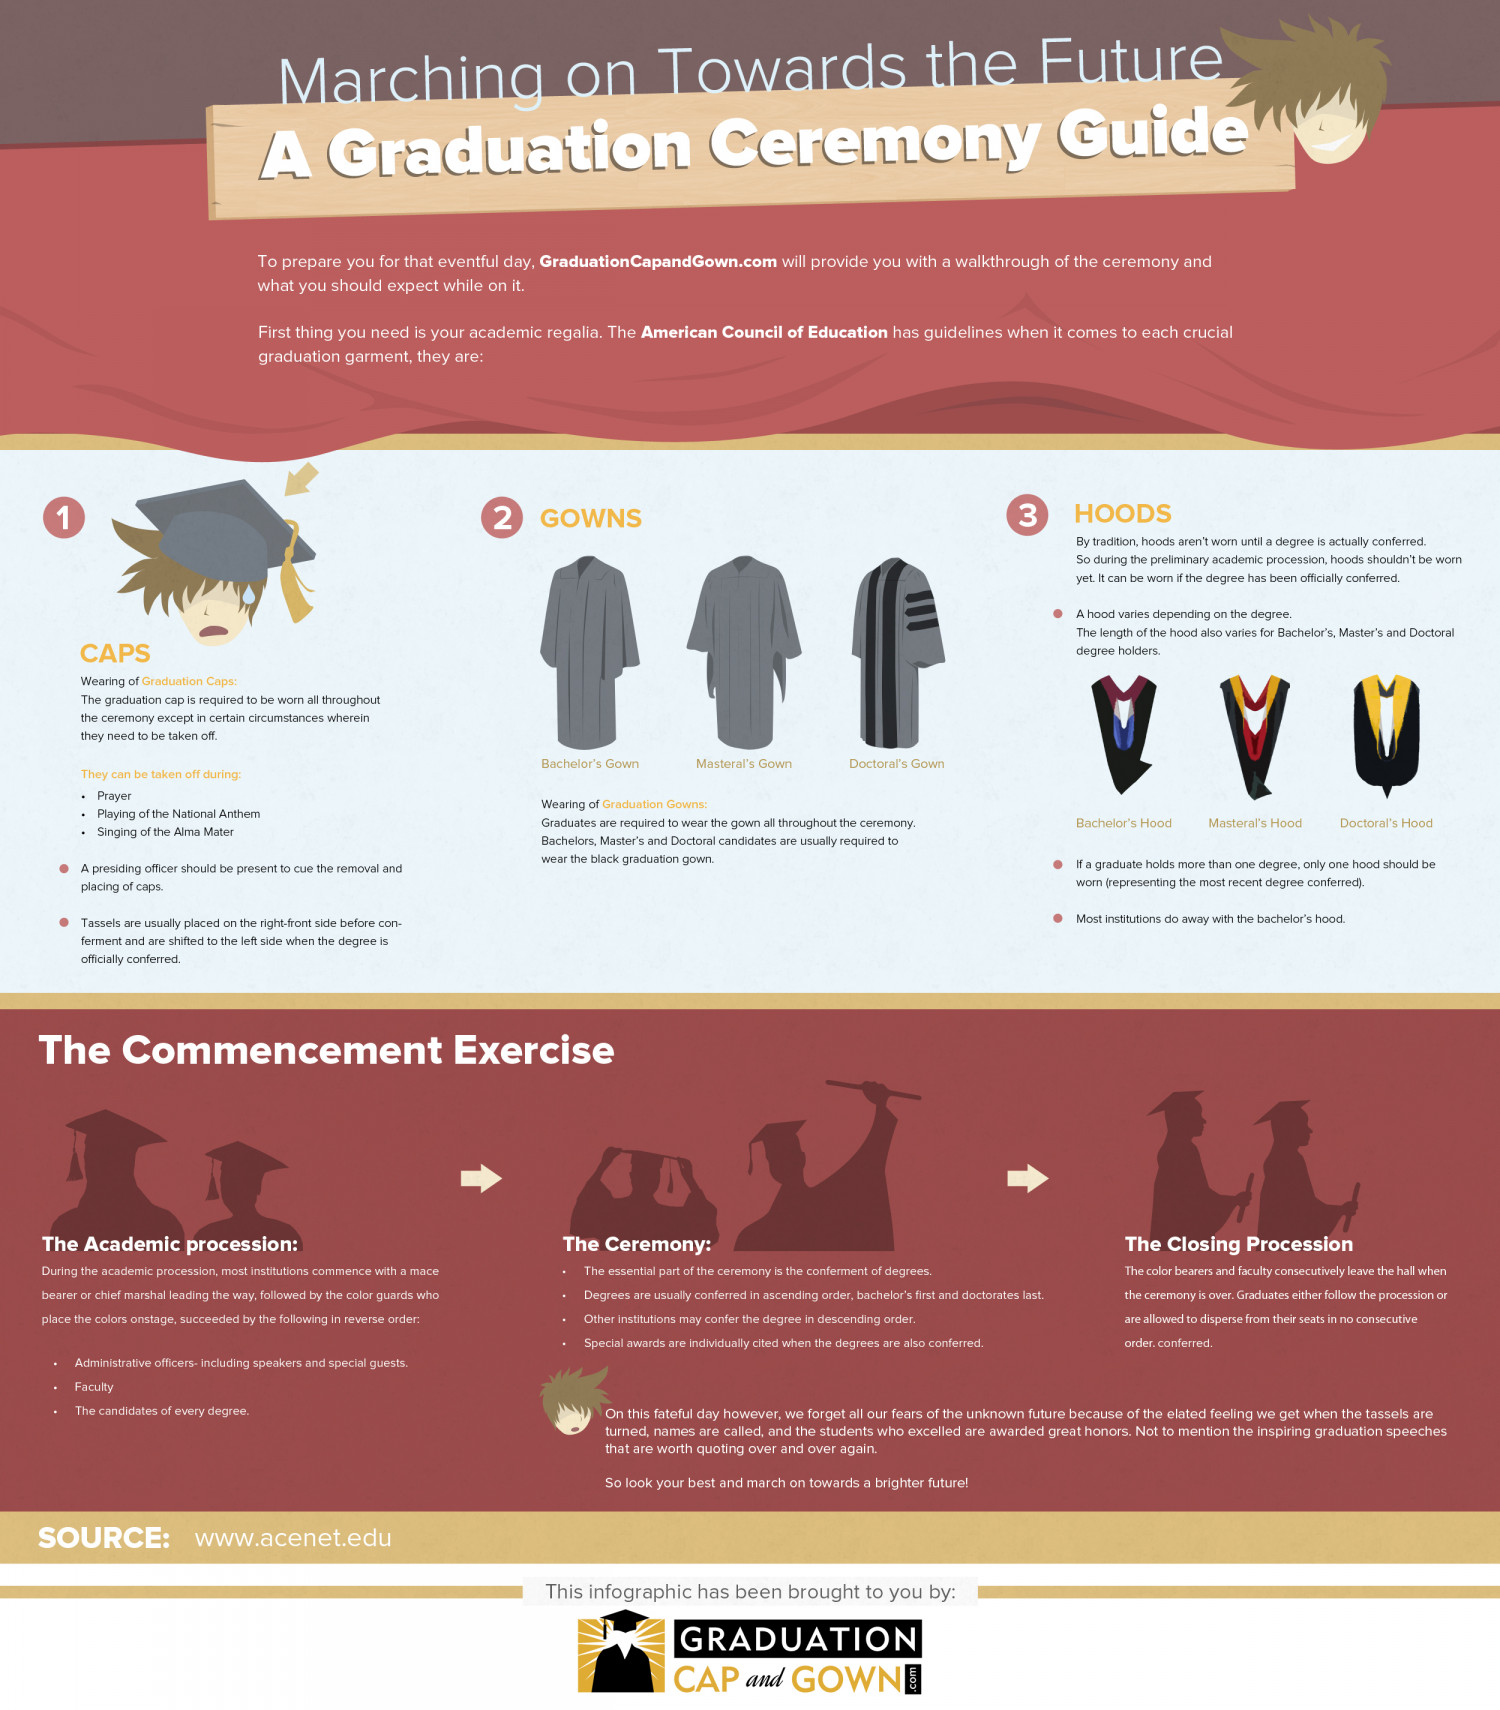 Marching On Towards the Future: A Graduation Ceremony Guide Infographic